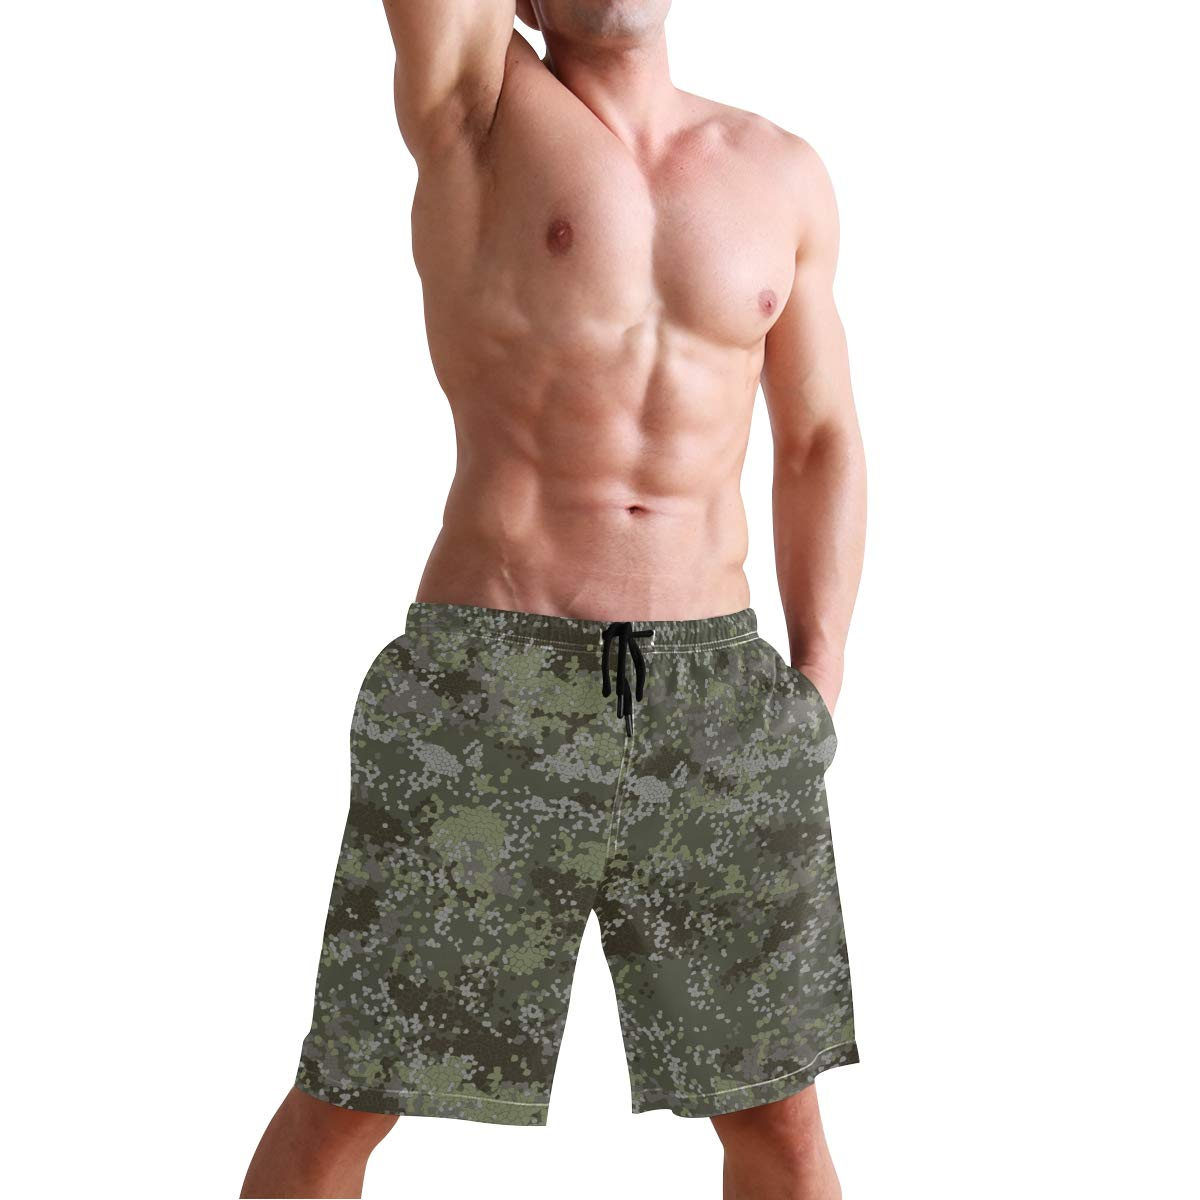 Creative Camo Mens Swim Trunks Quick Dry Beach Board Shorts with Drawstring Pocket